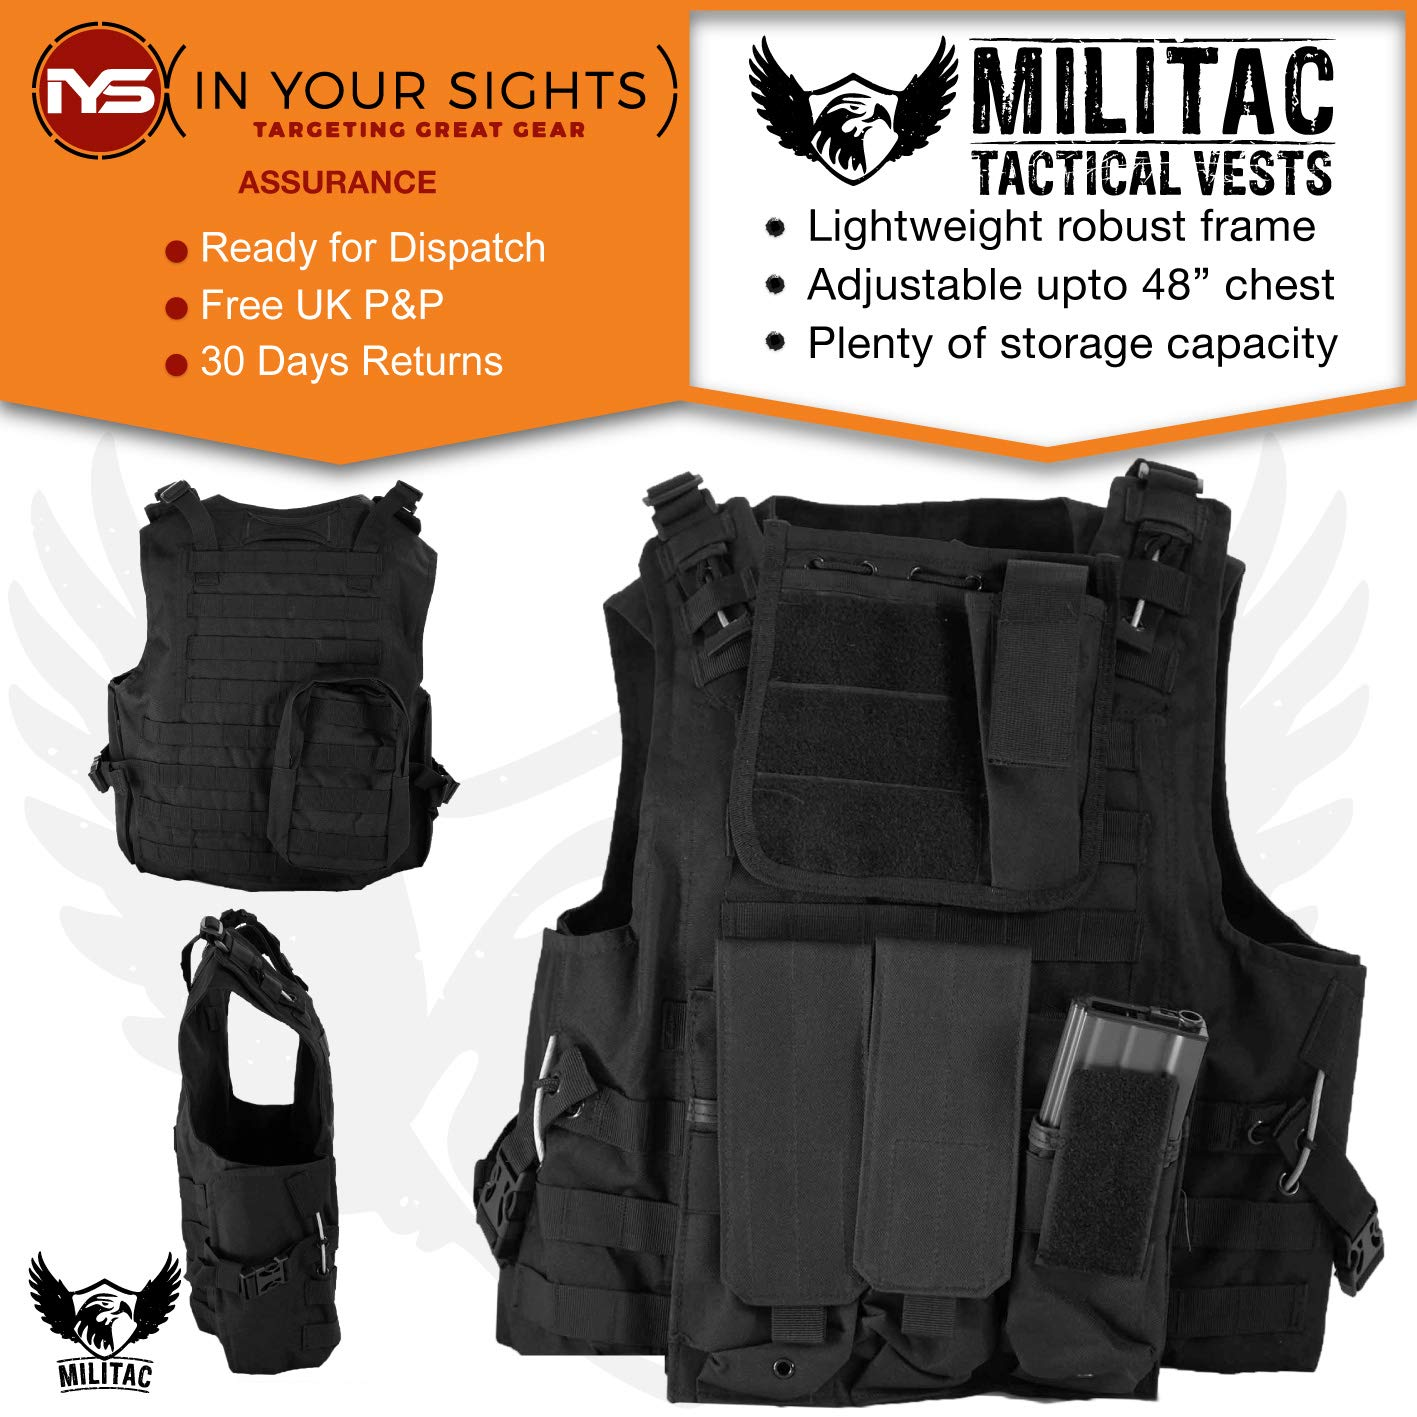 Sports & Entertainment Camping & Hiking Outdoor Tactical Vest Wireless Call Machine Vest Vest Chest Bag Holster Bag